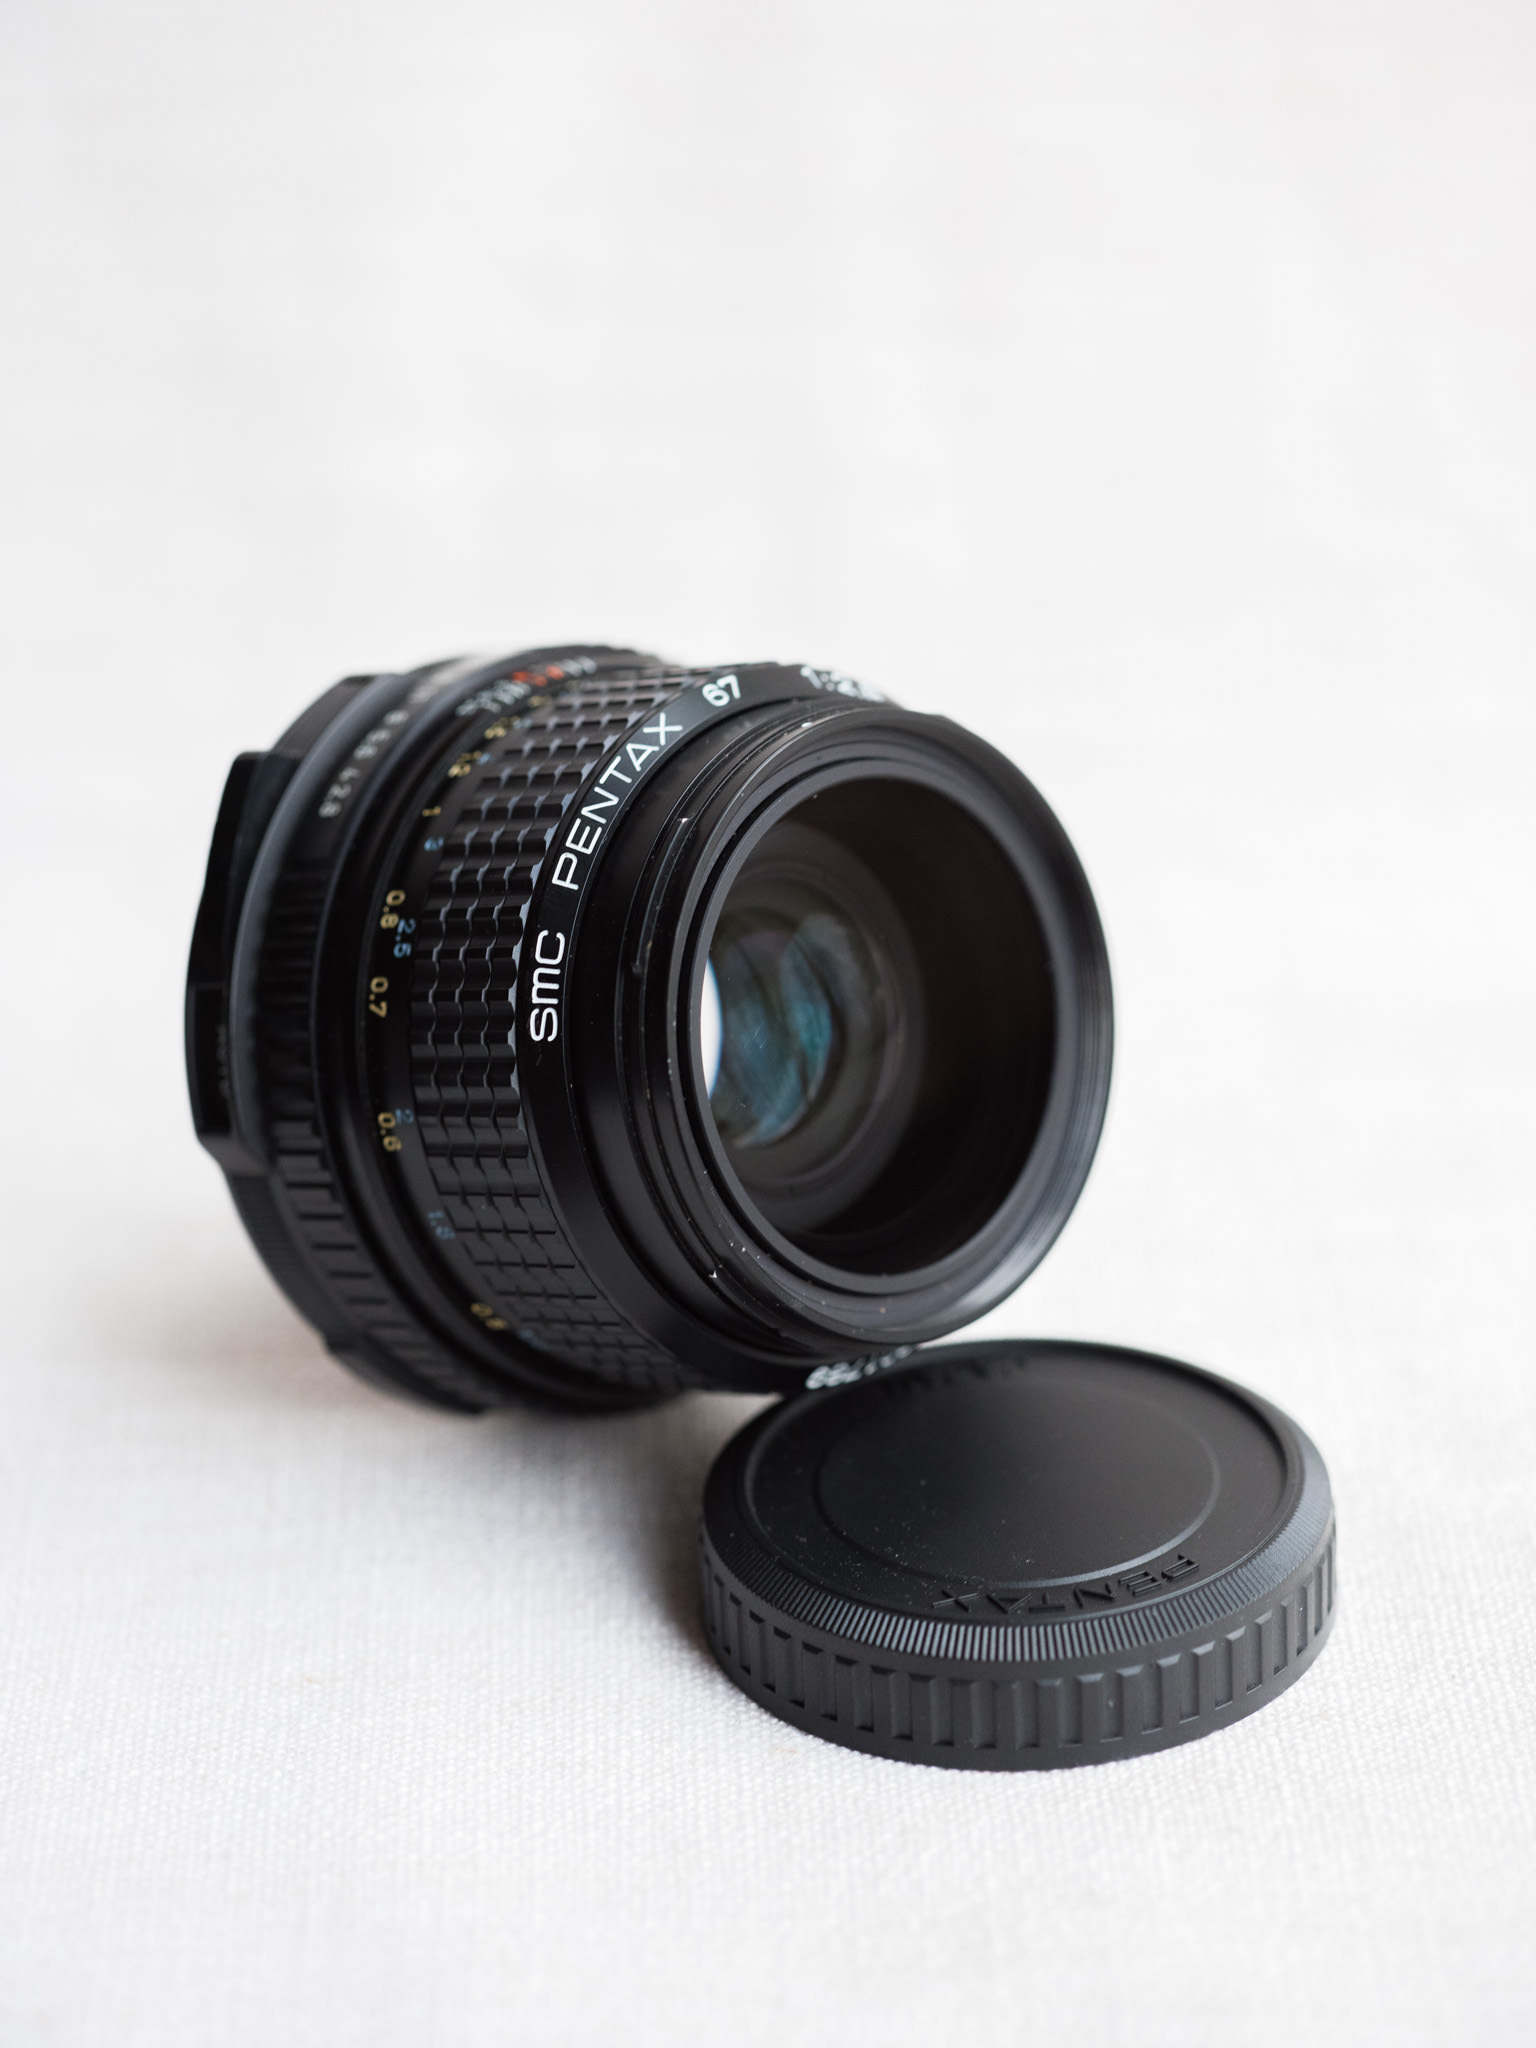 Image of the SMC Pentax 67 75mm f/2.8 AL Lens